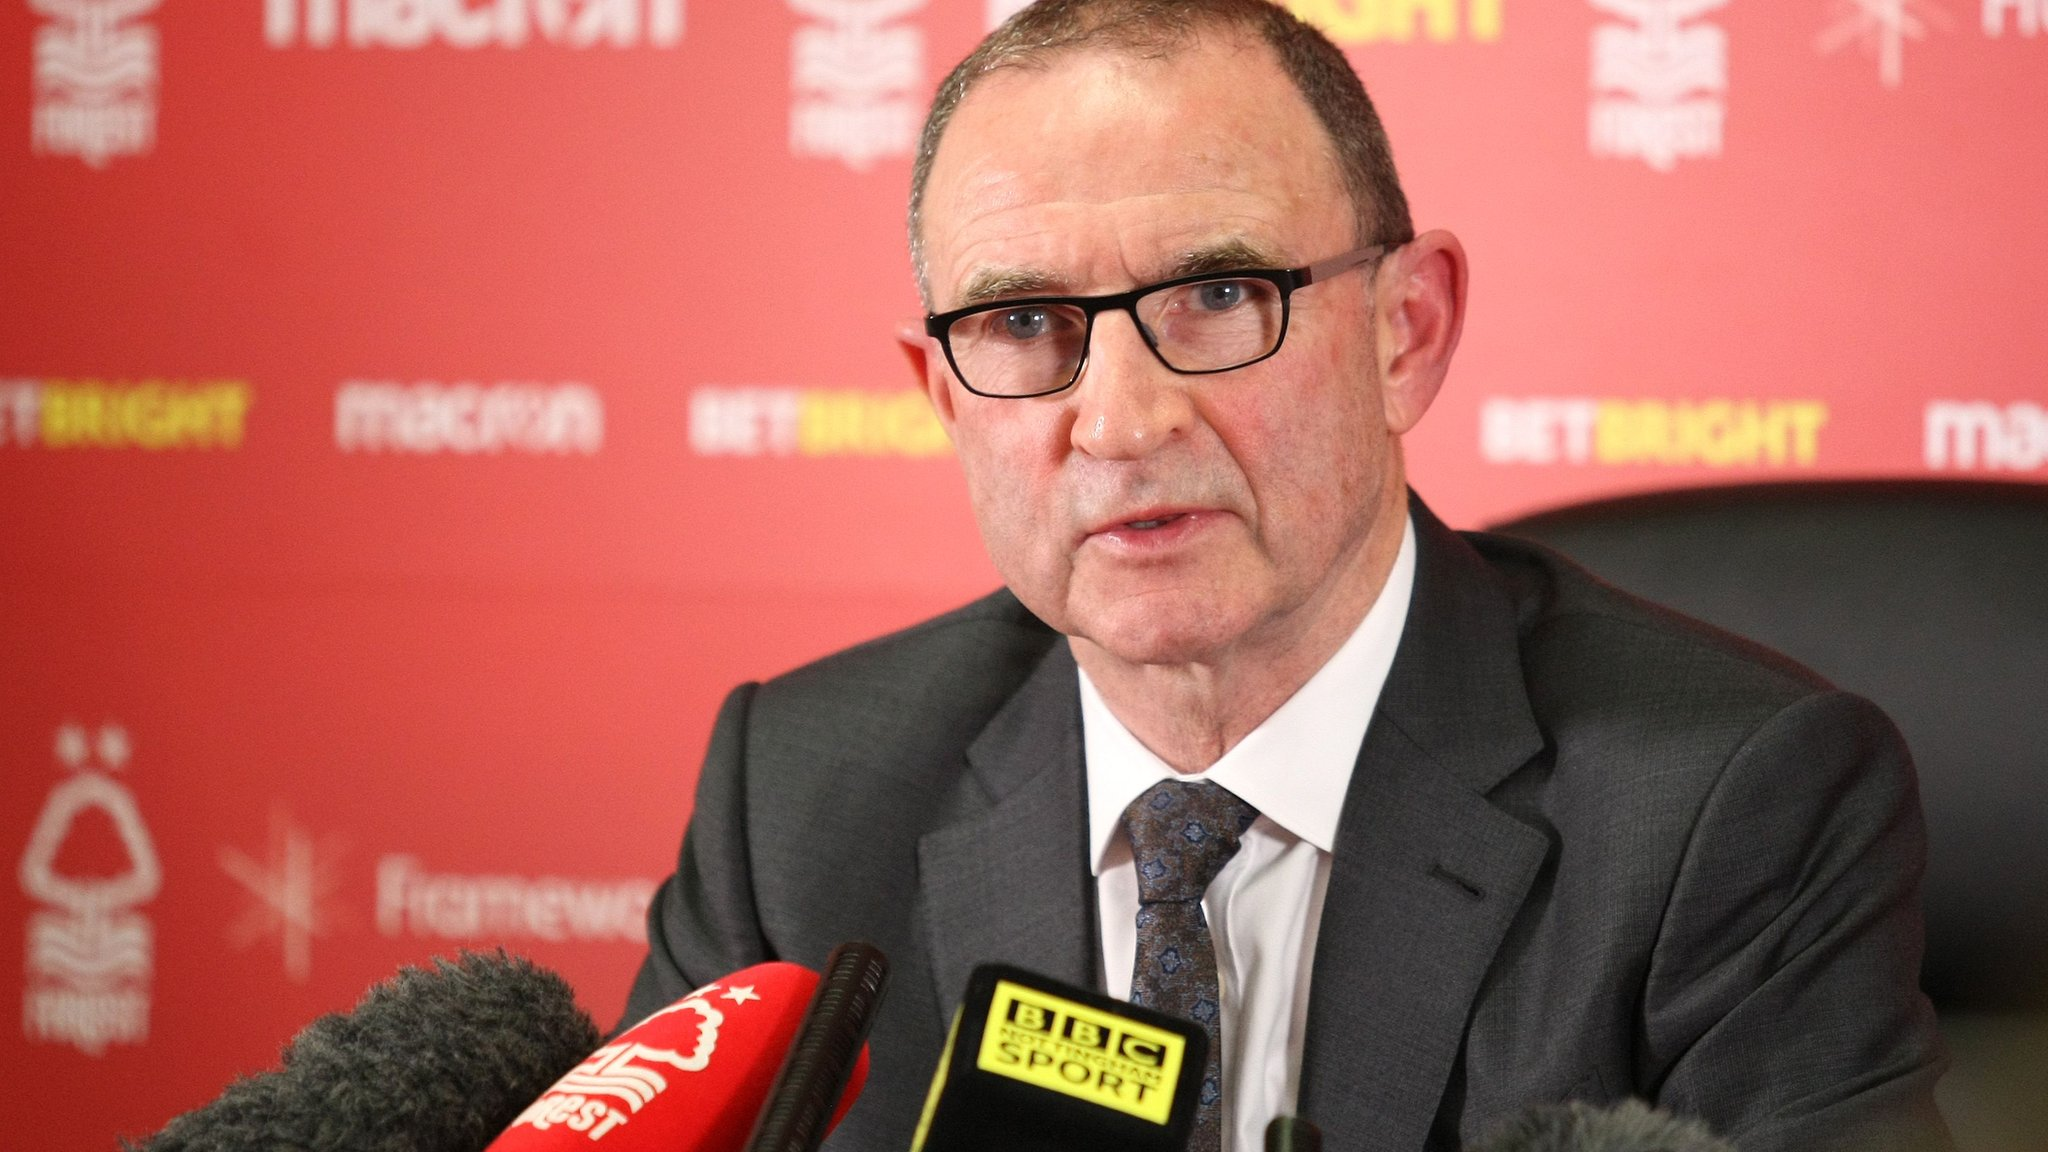 Nottingham Forest manager Martin O'Neill wants Roy Keane as assistant